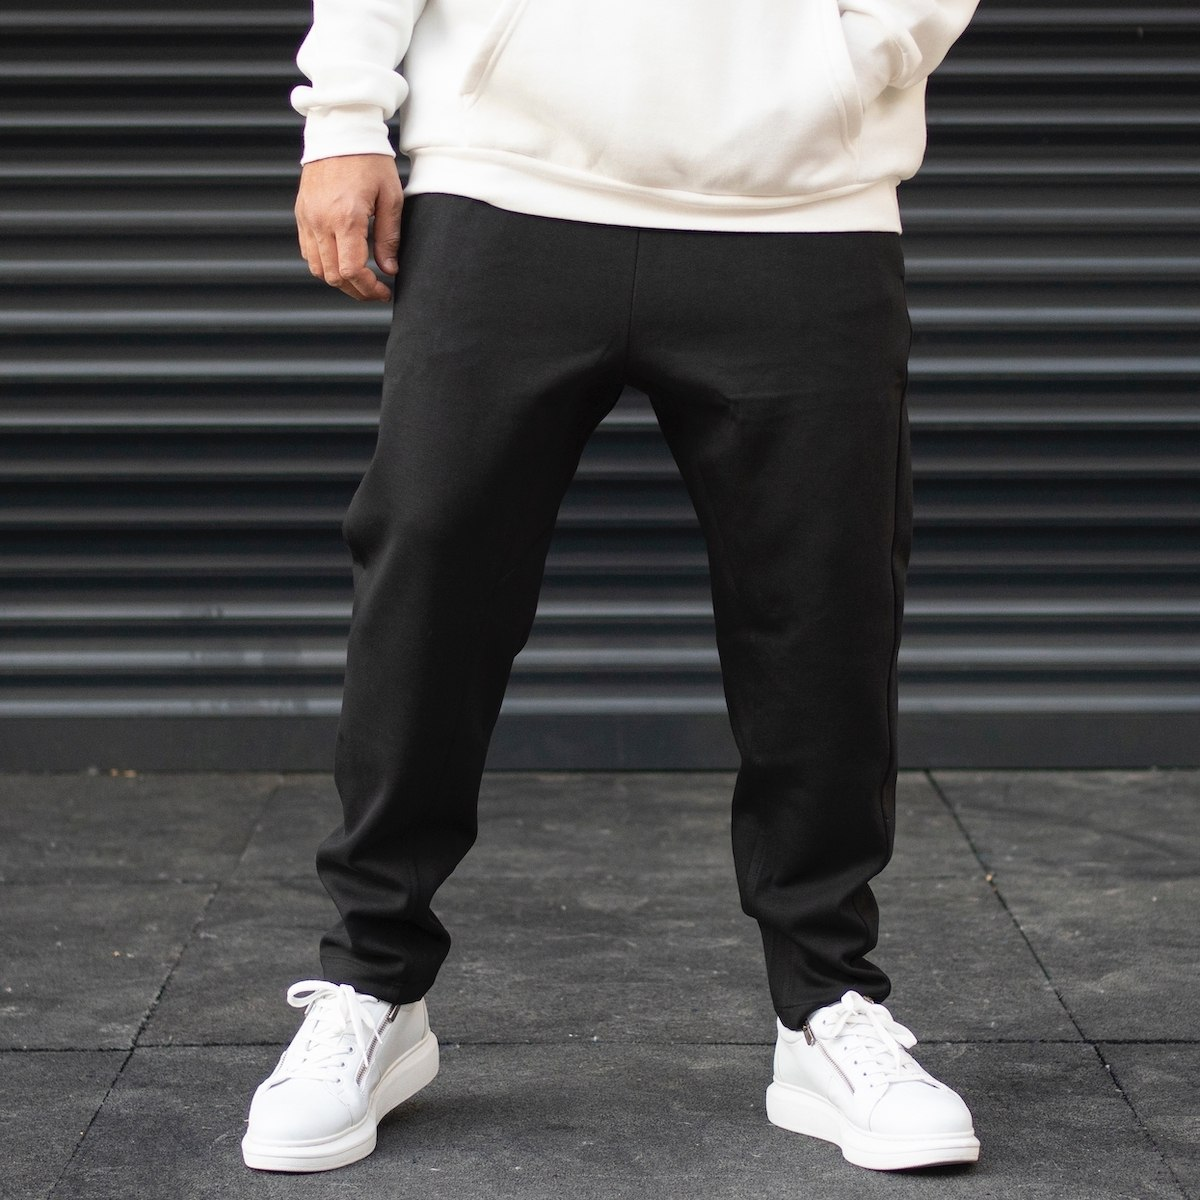 Men's Oversize Loose Fit Basic Sweatpants With Thick Texture In Black